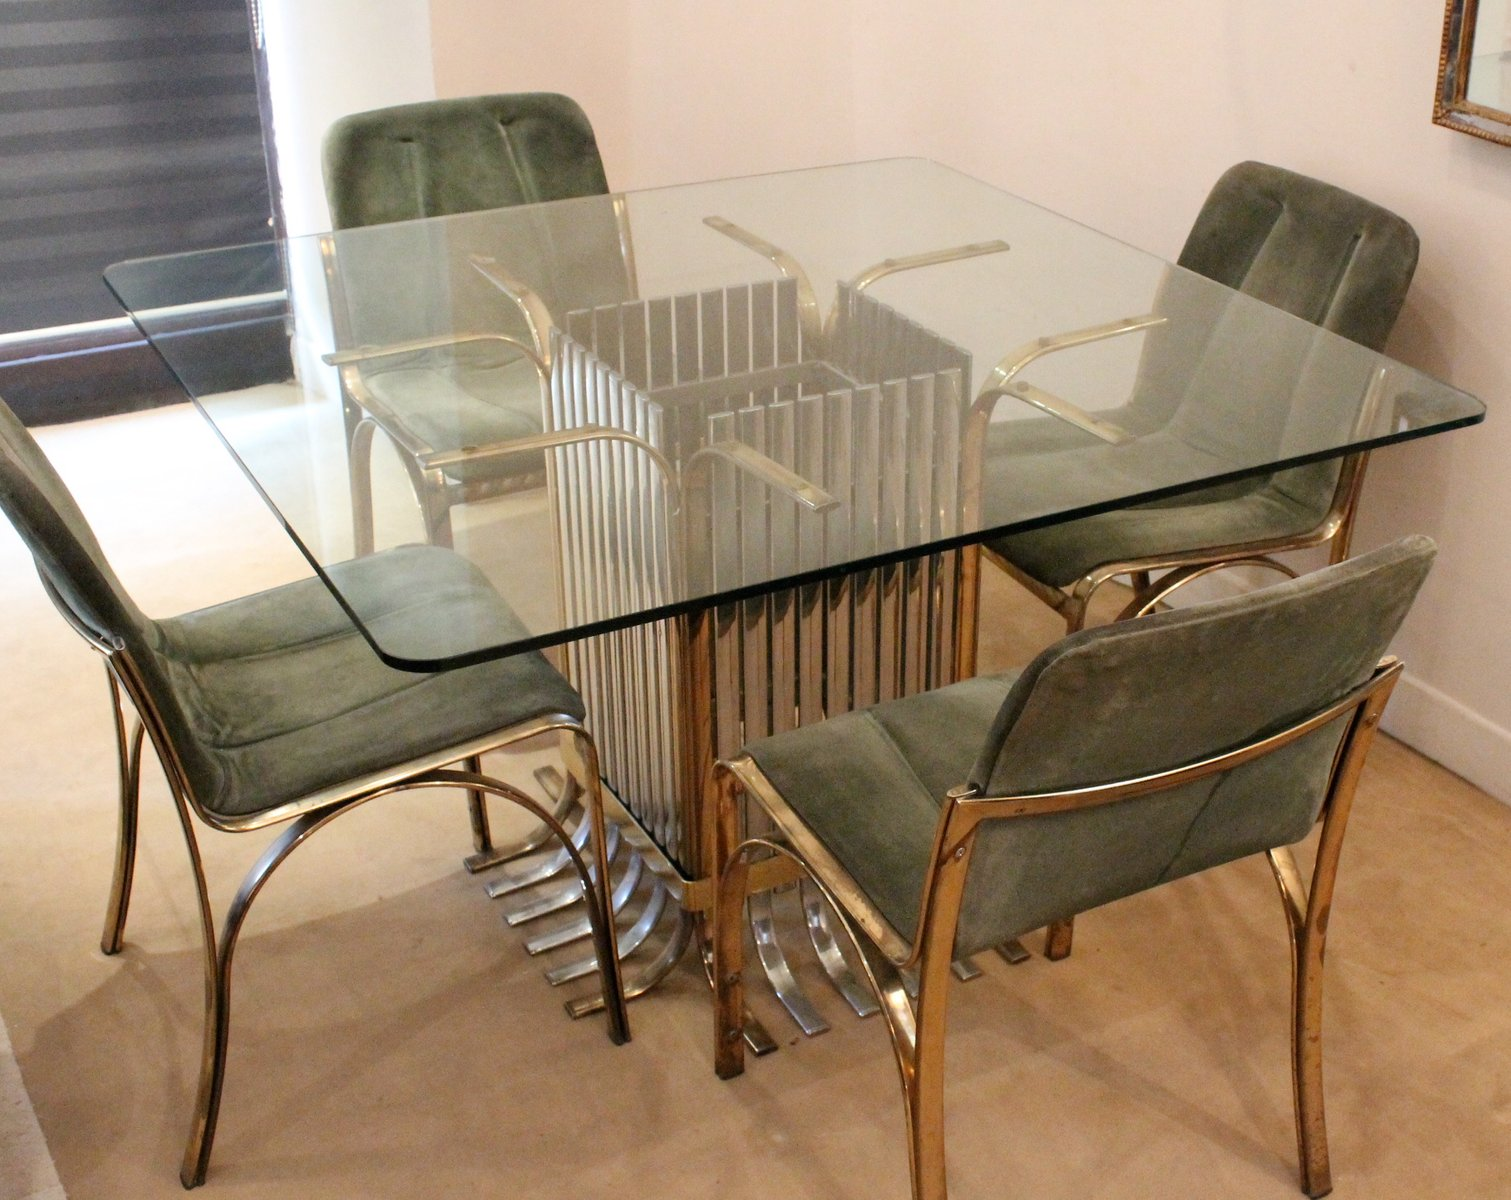 Italian Glass Dining Table with Four Chairs 1970 for sale  : italian glass dining table with four chairs 1970 18 from www.pamono.eu size 1511 x 1200 jpeg 166kB